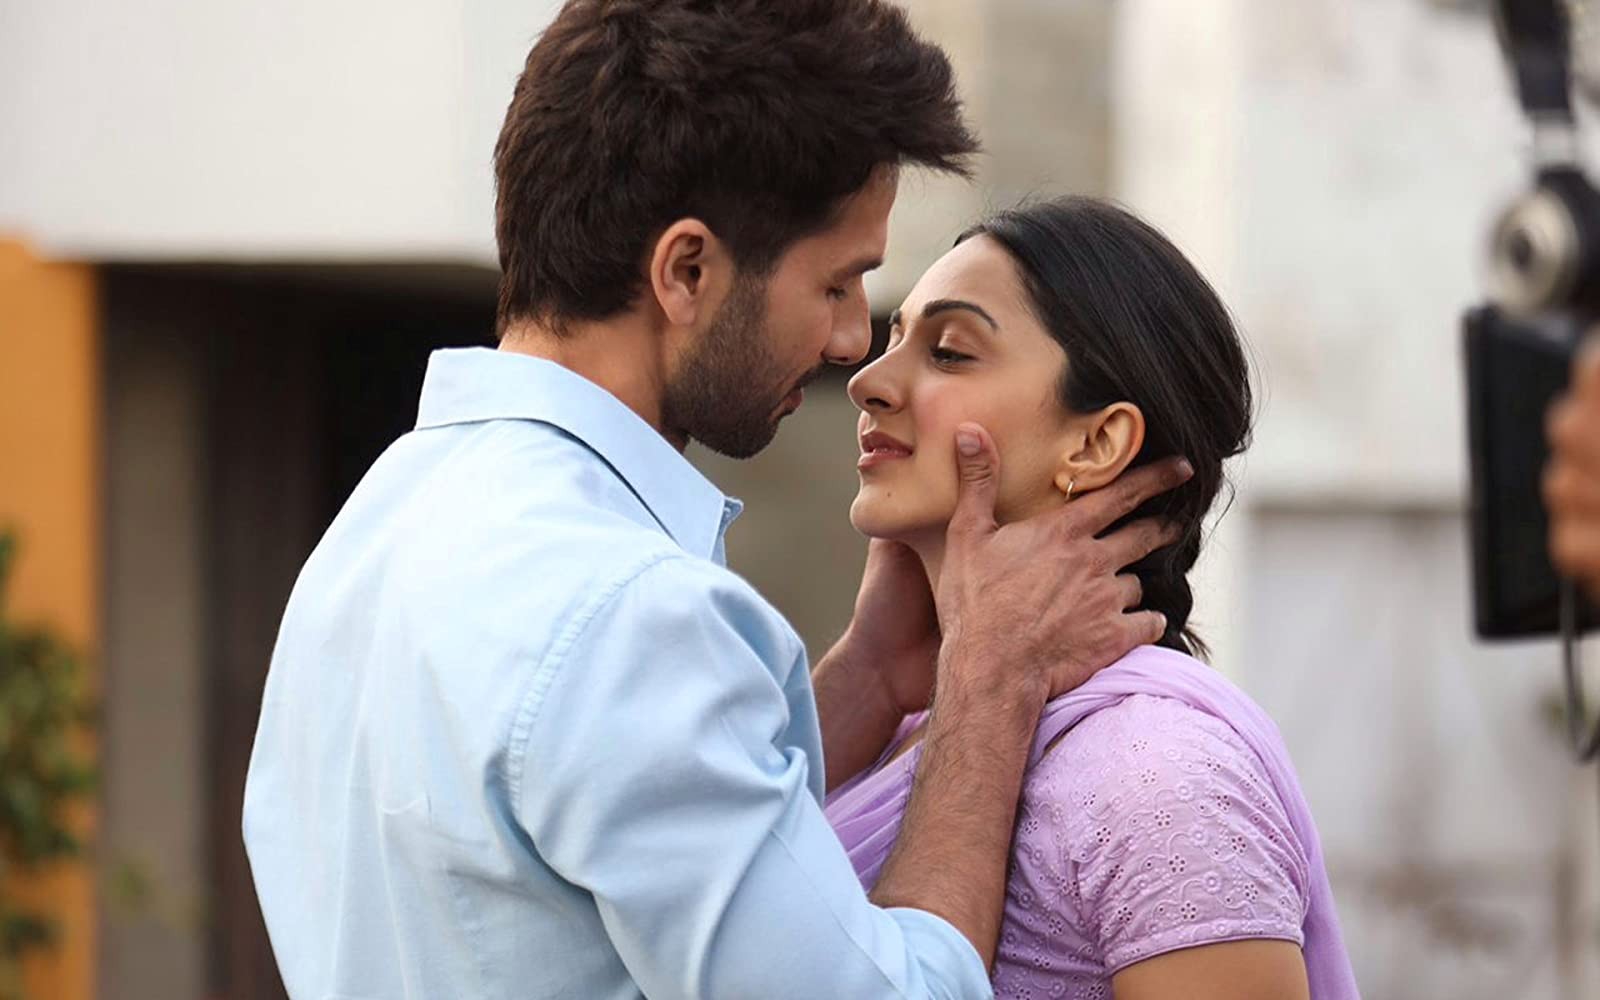 Shahid Kapoor and Kiara Advani in Kabir Singh (2019)